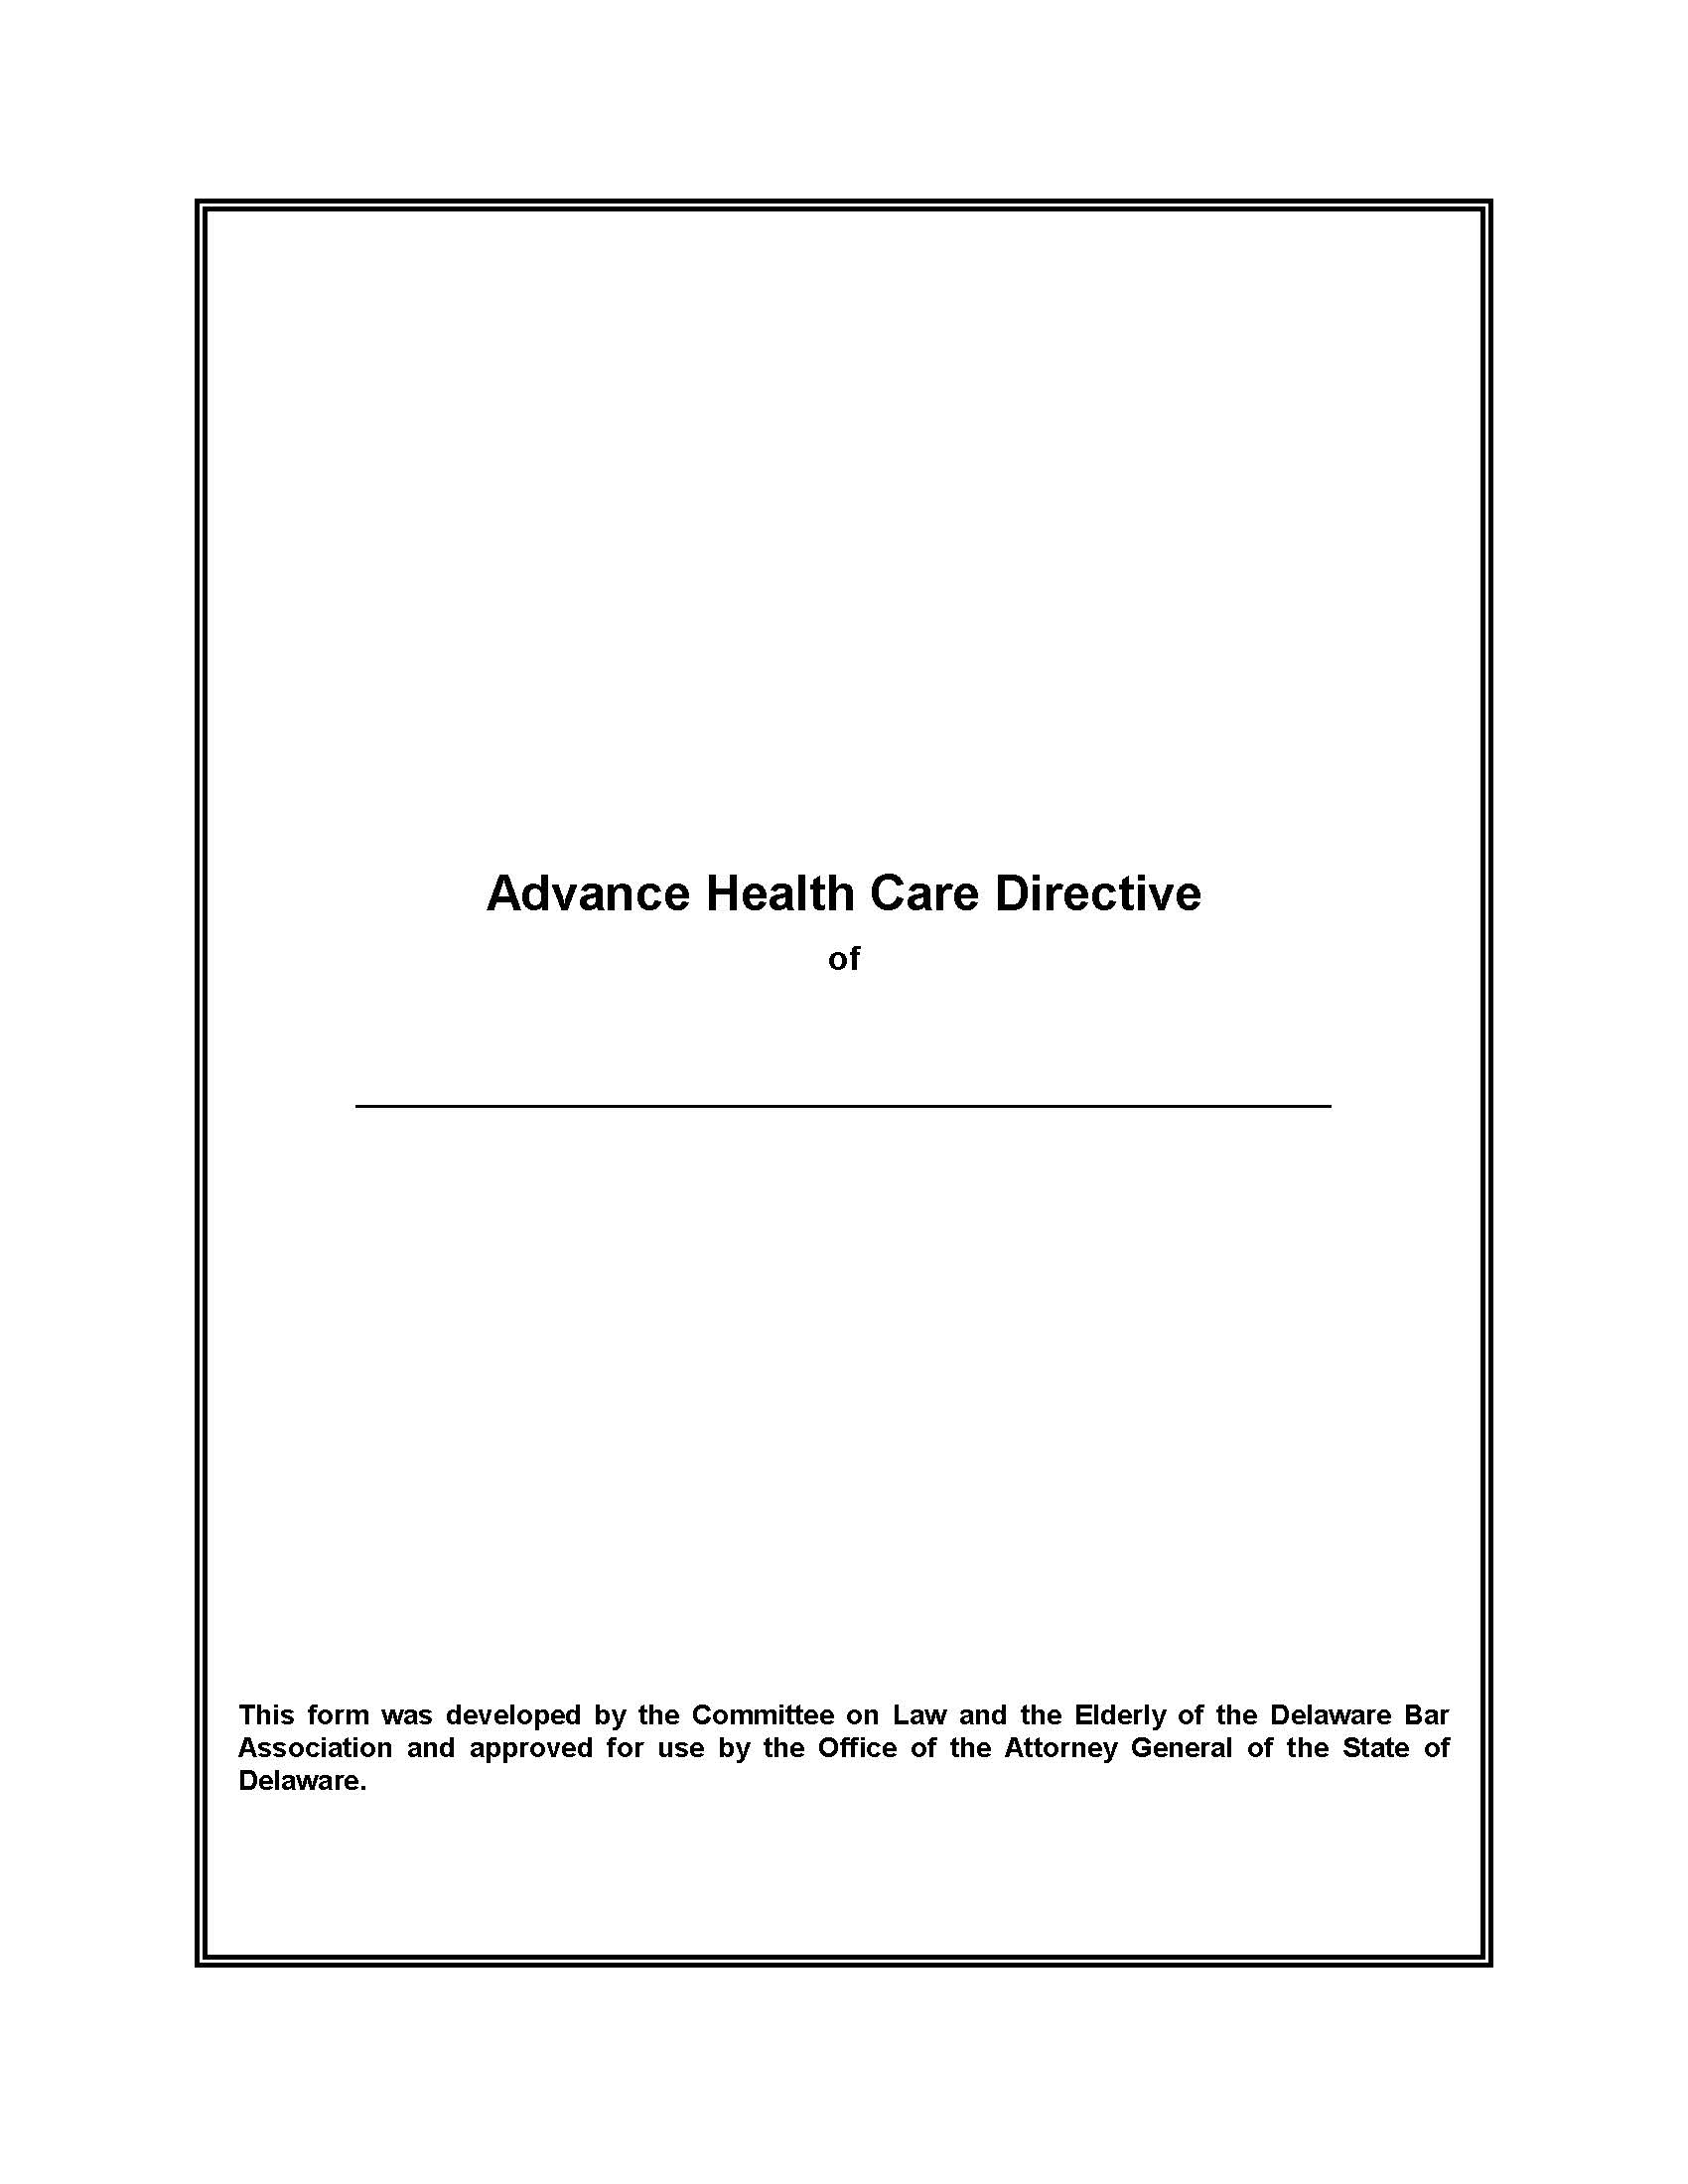 delaware advance health care directiveliving will form - Will Form